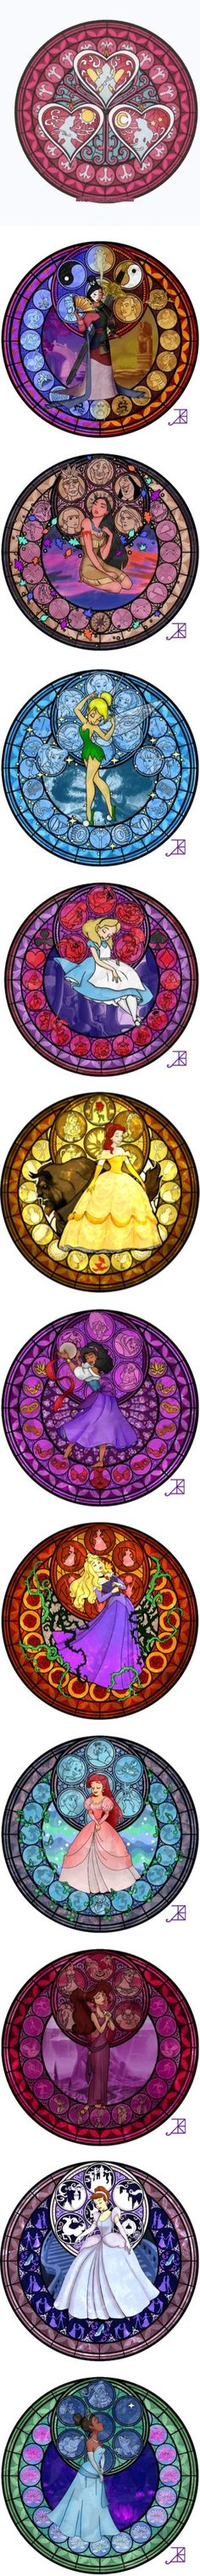 """Disney princess stained glass"" by shygirl1229 ❤ liked on Polyvore"